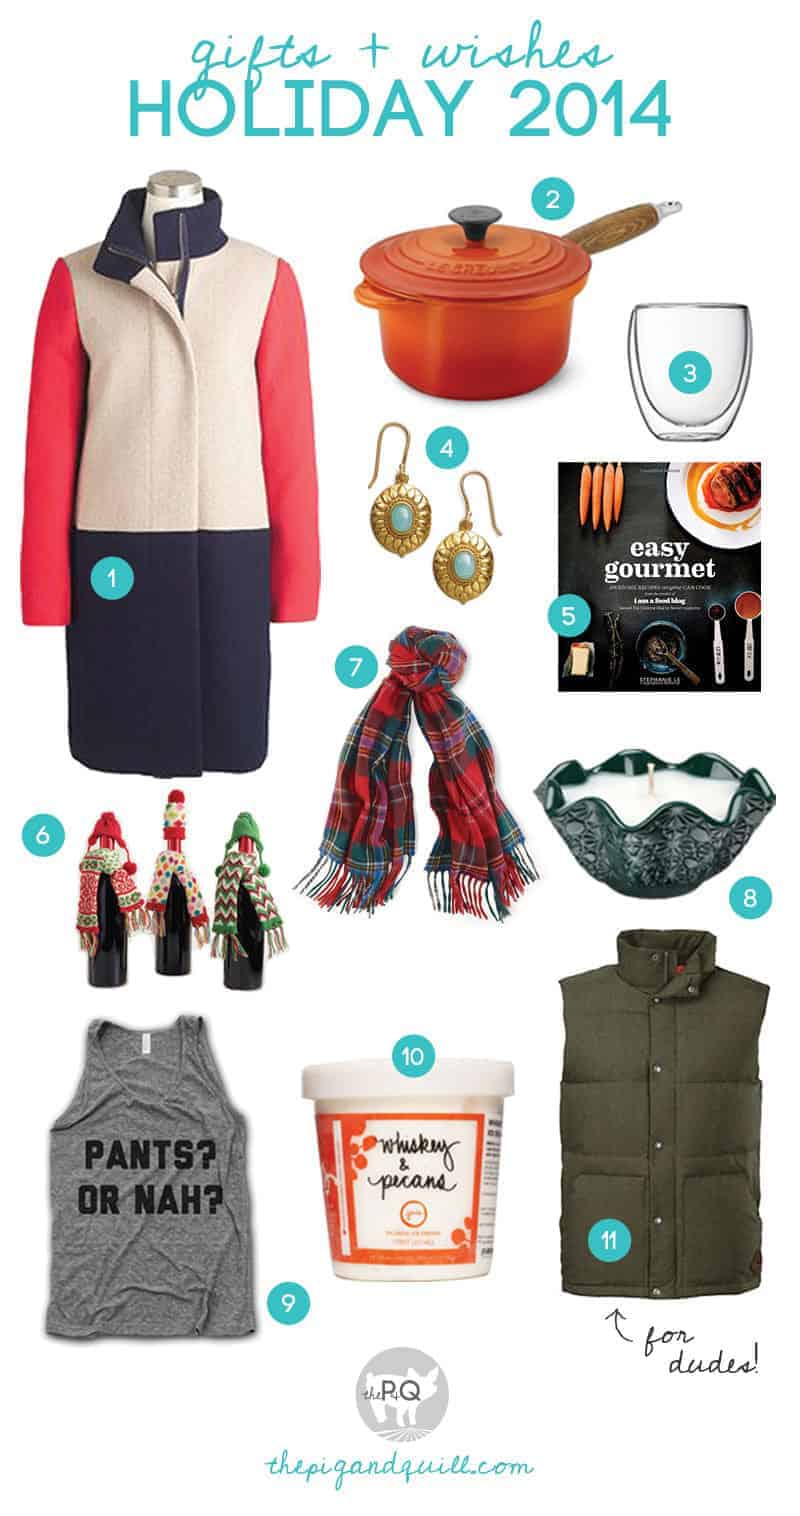 My fave giftables (foodie and otherwise!) for Holiday 2014  -- Links and descriptions at www.thepigandquill.com #holiday #giftguide #christmas #gifts